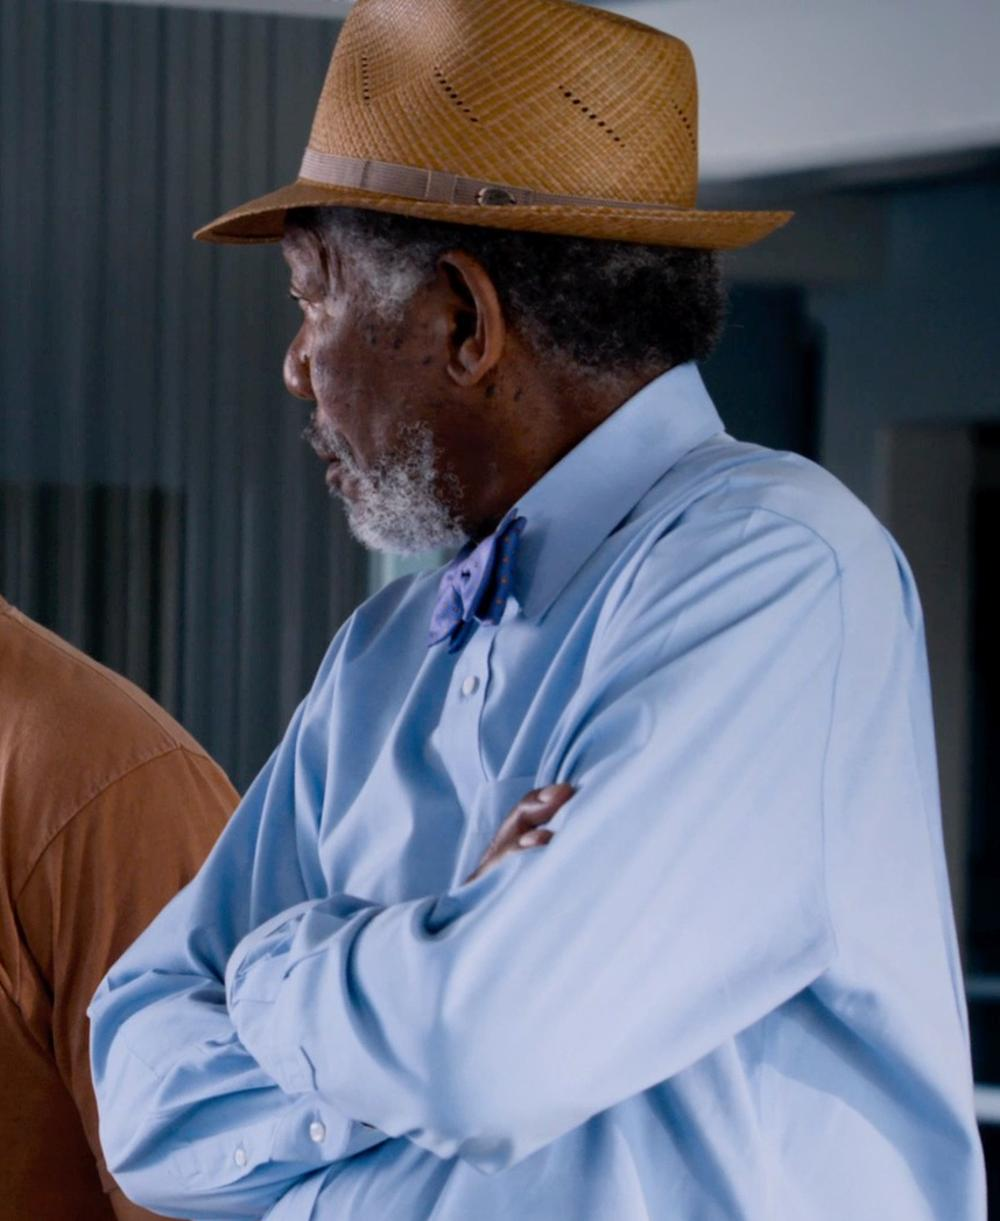 Morgan Freeman with Gitman Regular Fit Pinpoint Cotton Oxford Point Collar Dress Shirt in Dolphin Tale 2